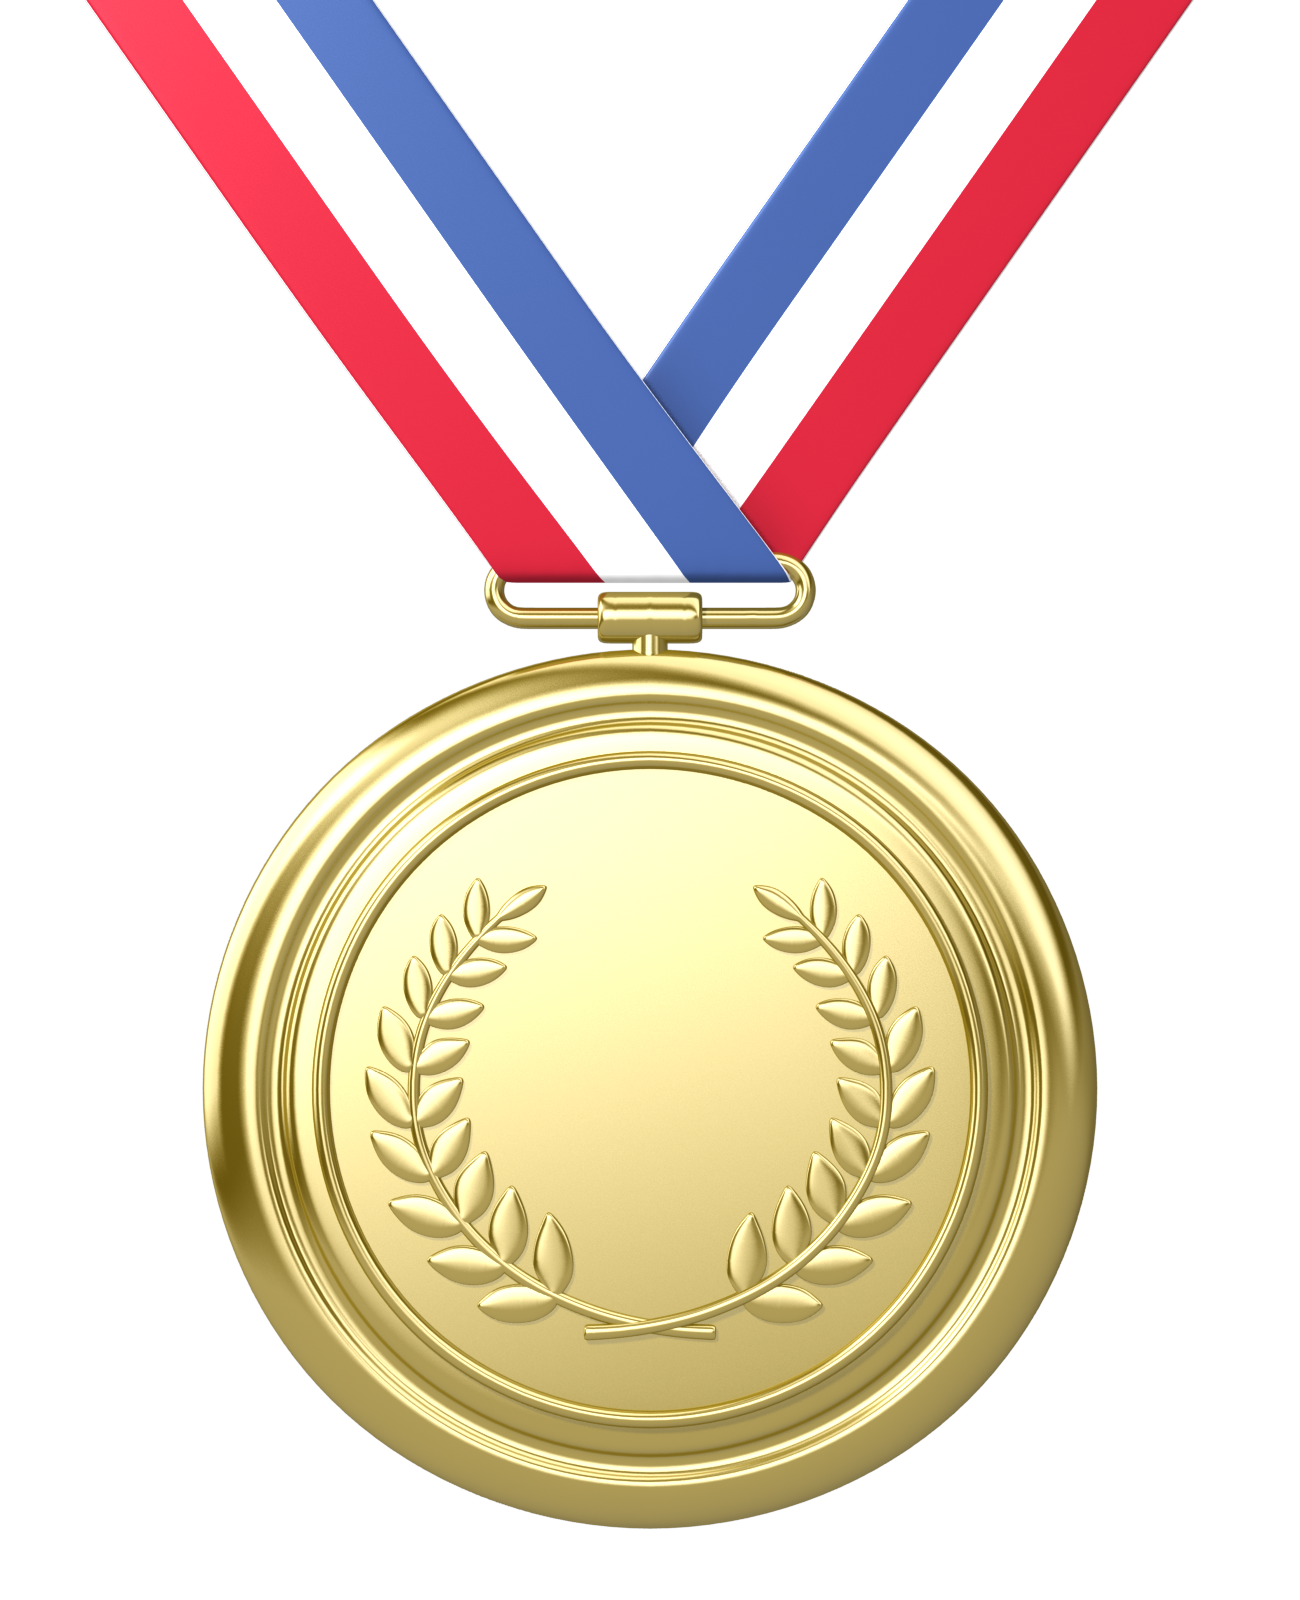 Free Medal Transparent Background, Download Free Clip Art.